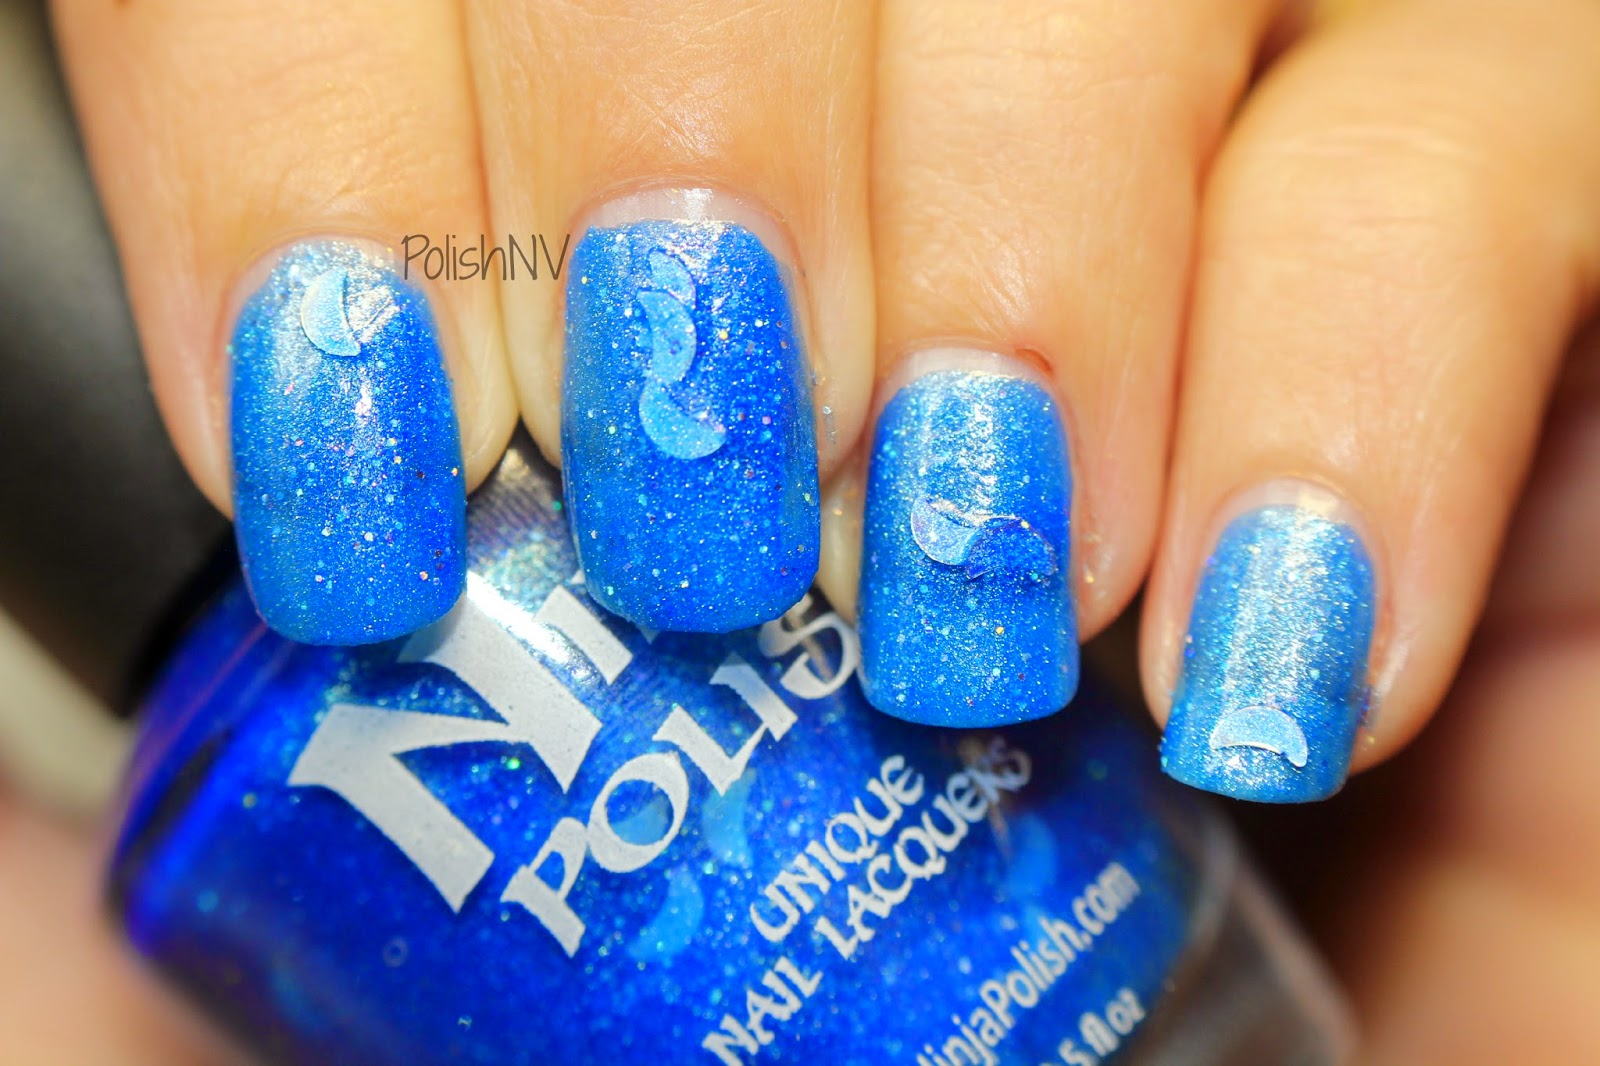 ninja polish howling  blue moon